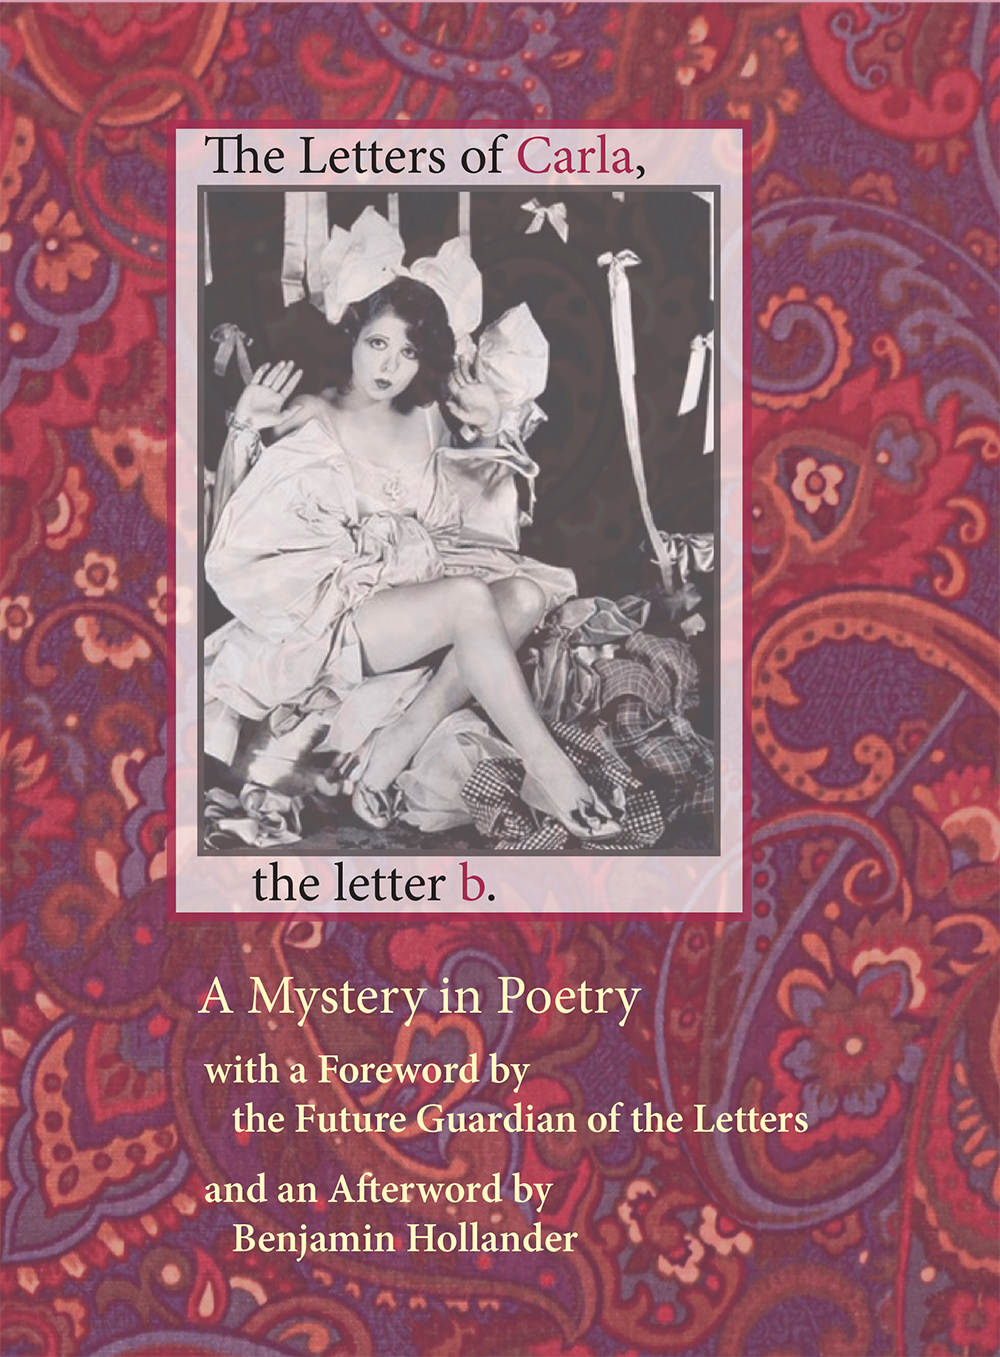 The Letters of Carla, the letter b: A Mystery in Poetry